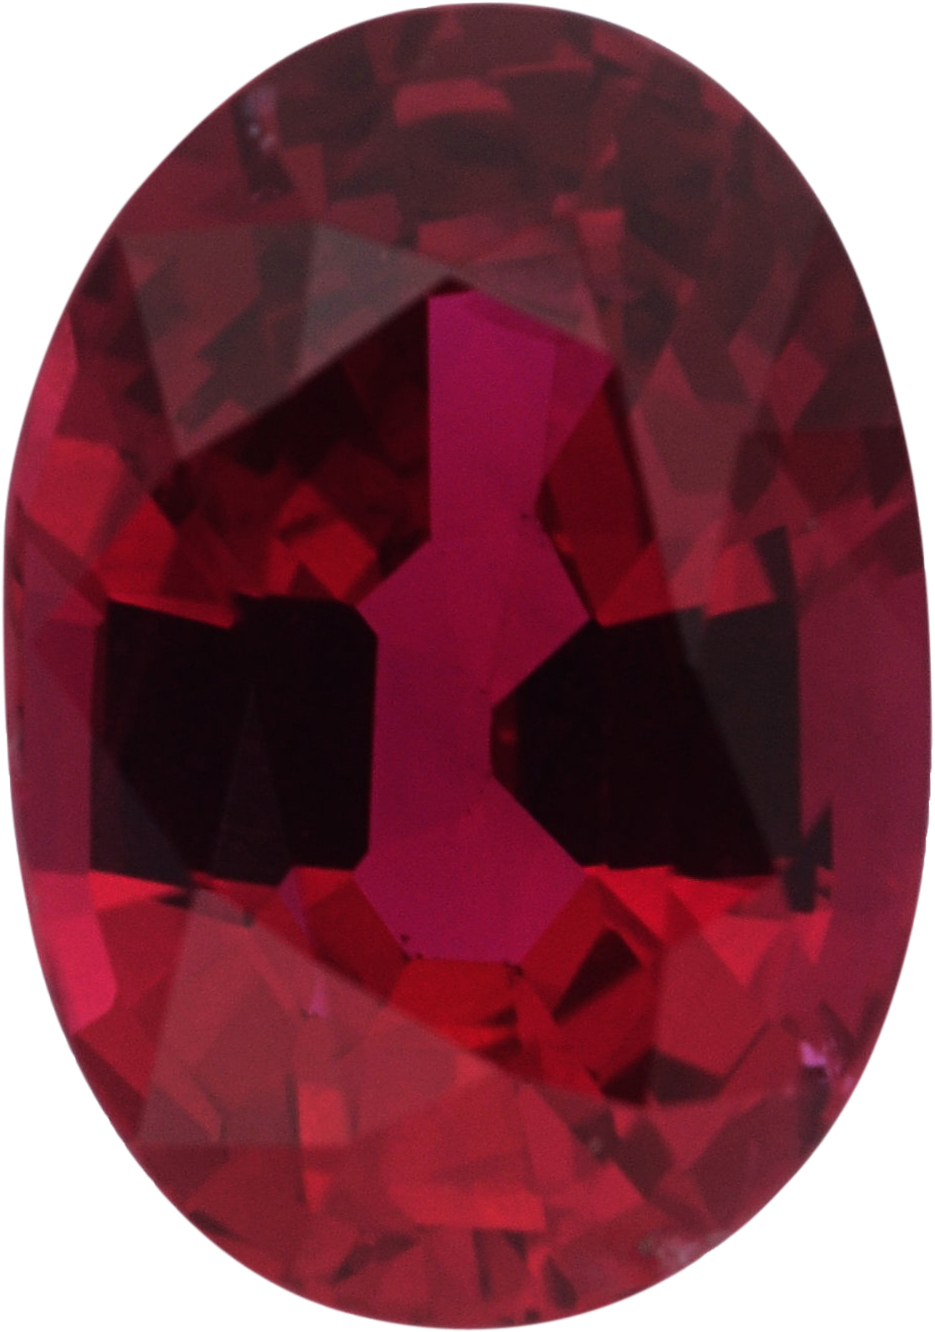 Pretty Oval Cut Loose Ruby Gem, Red Color, 6.82 x 4.79 mm, 0.9 carats